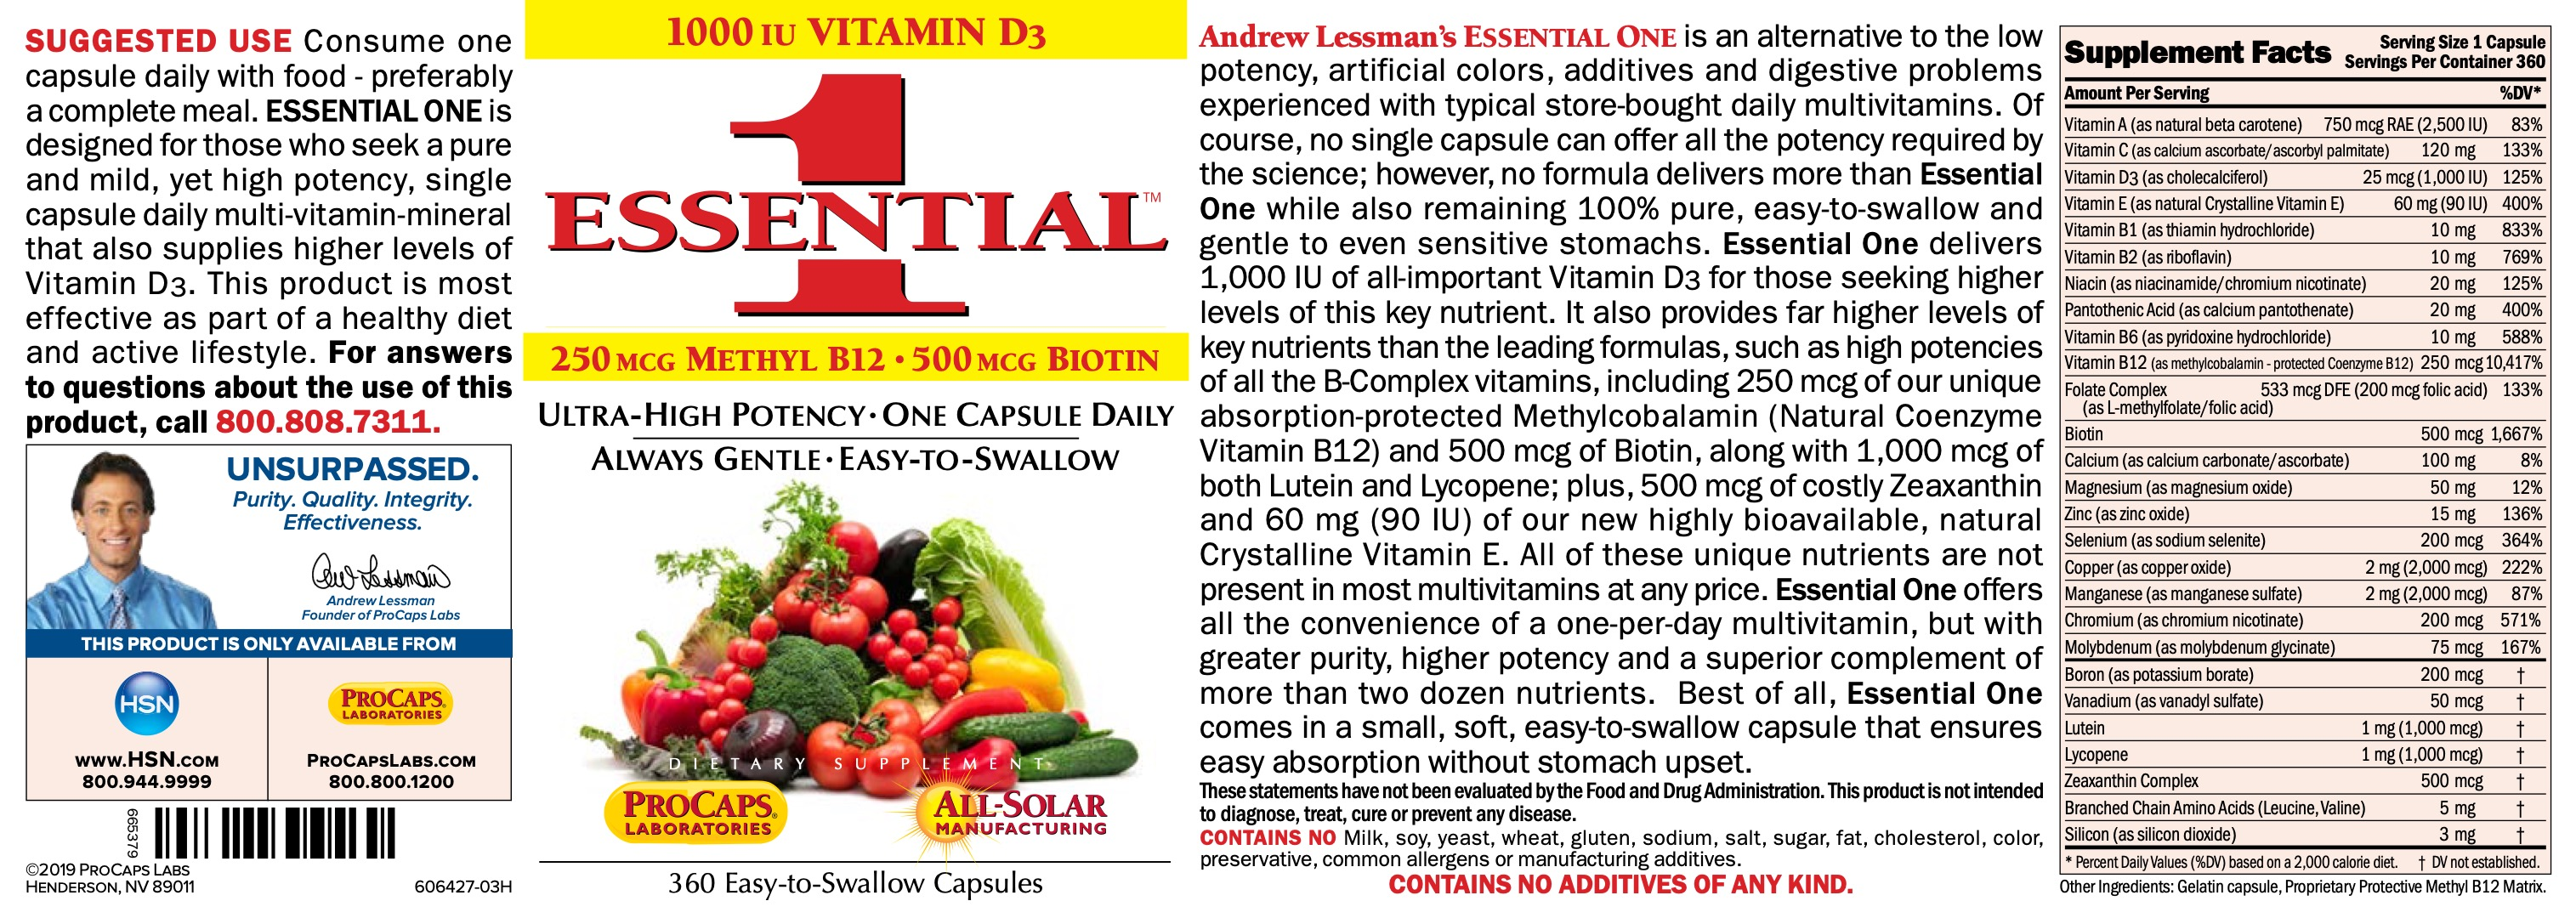 Essential-1-with-1000-IU-Vitamin-D3-Capsules-Multivitamins